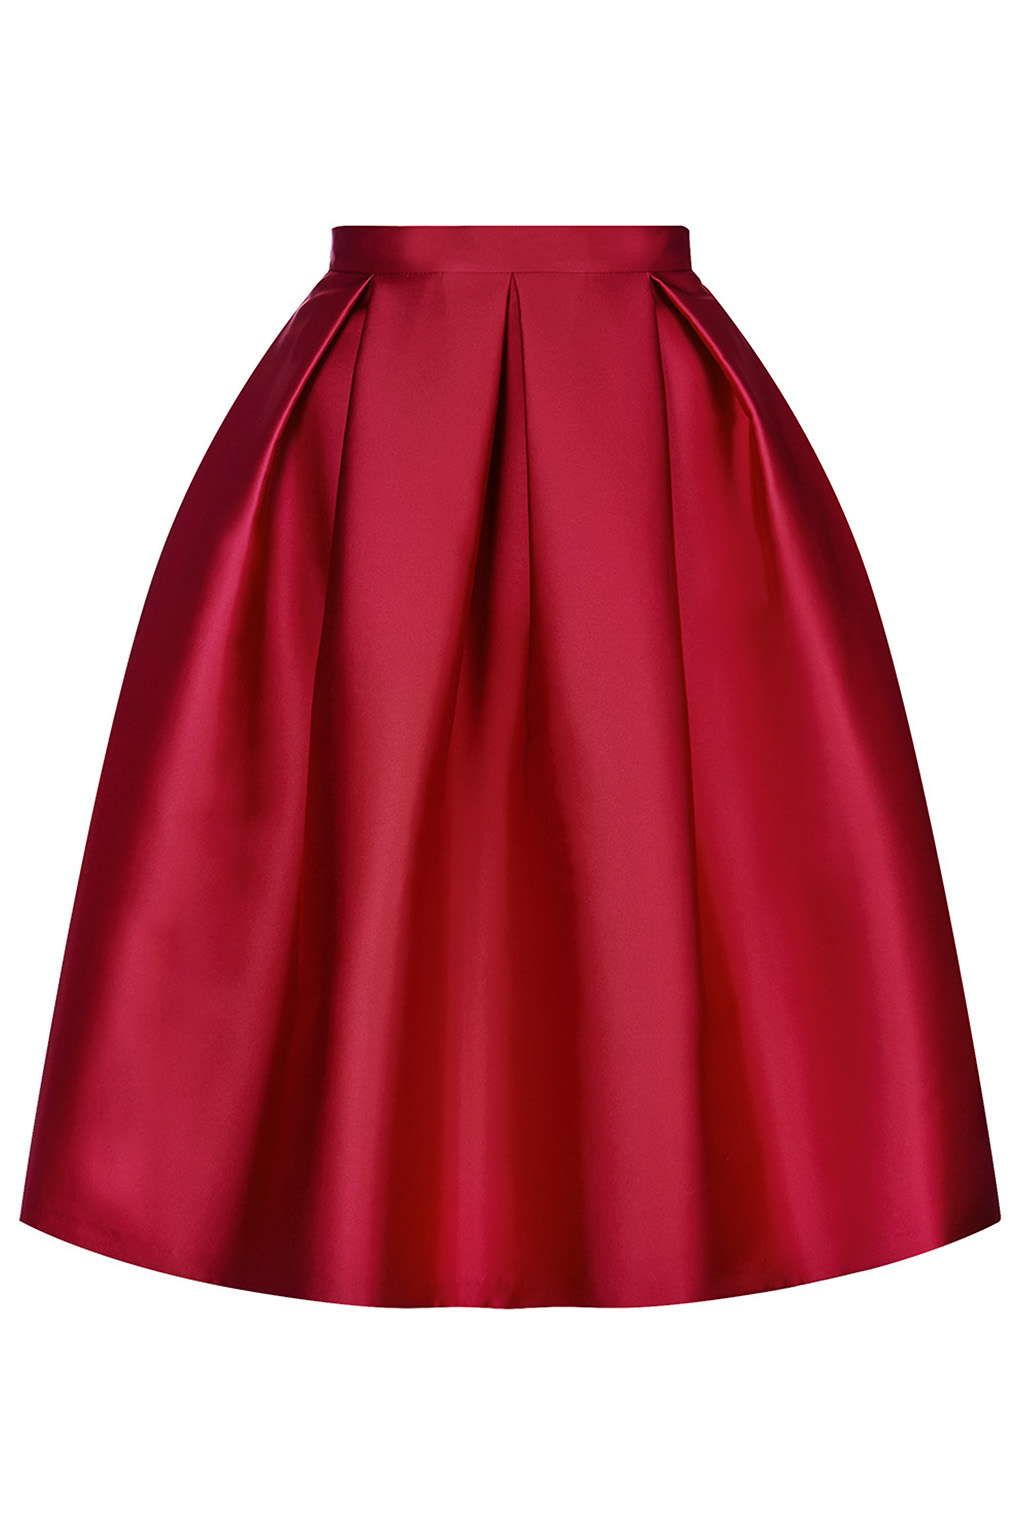 4a65b727e4 Satin Prom Midi Skirt | Clothes/Accessories/Fragrance | Satin skirt ...